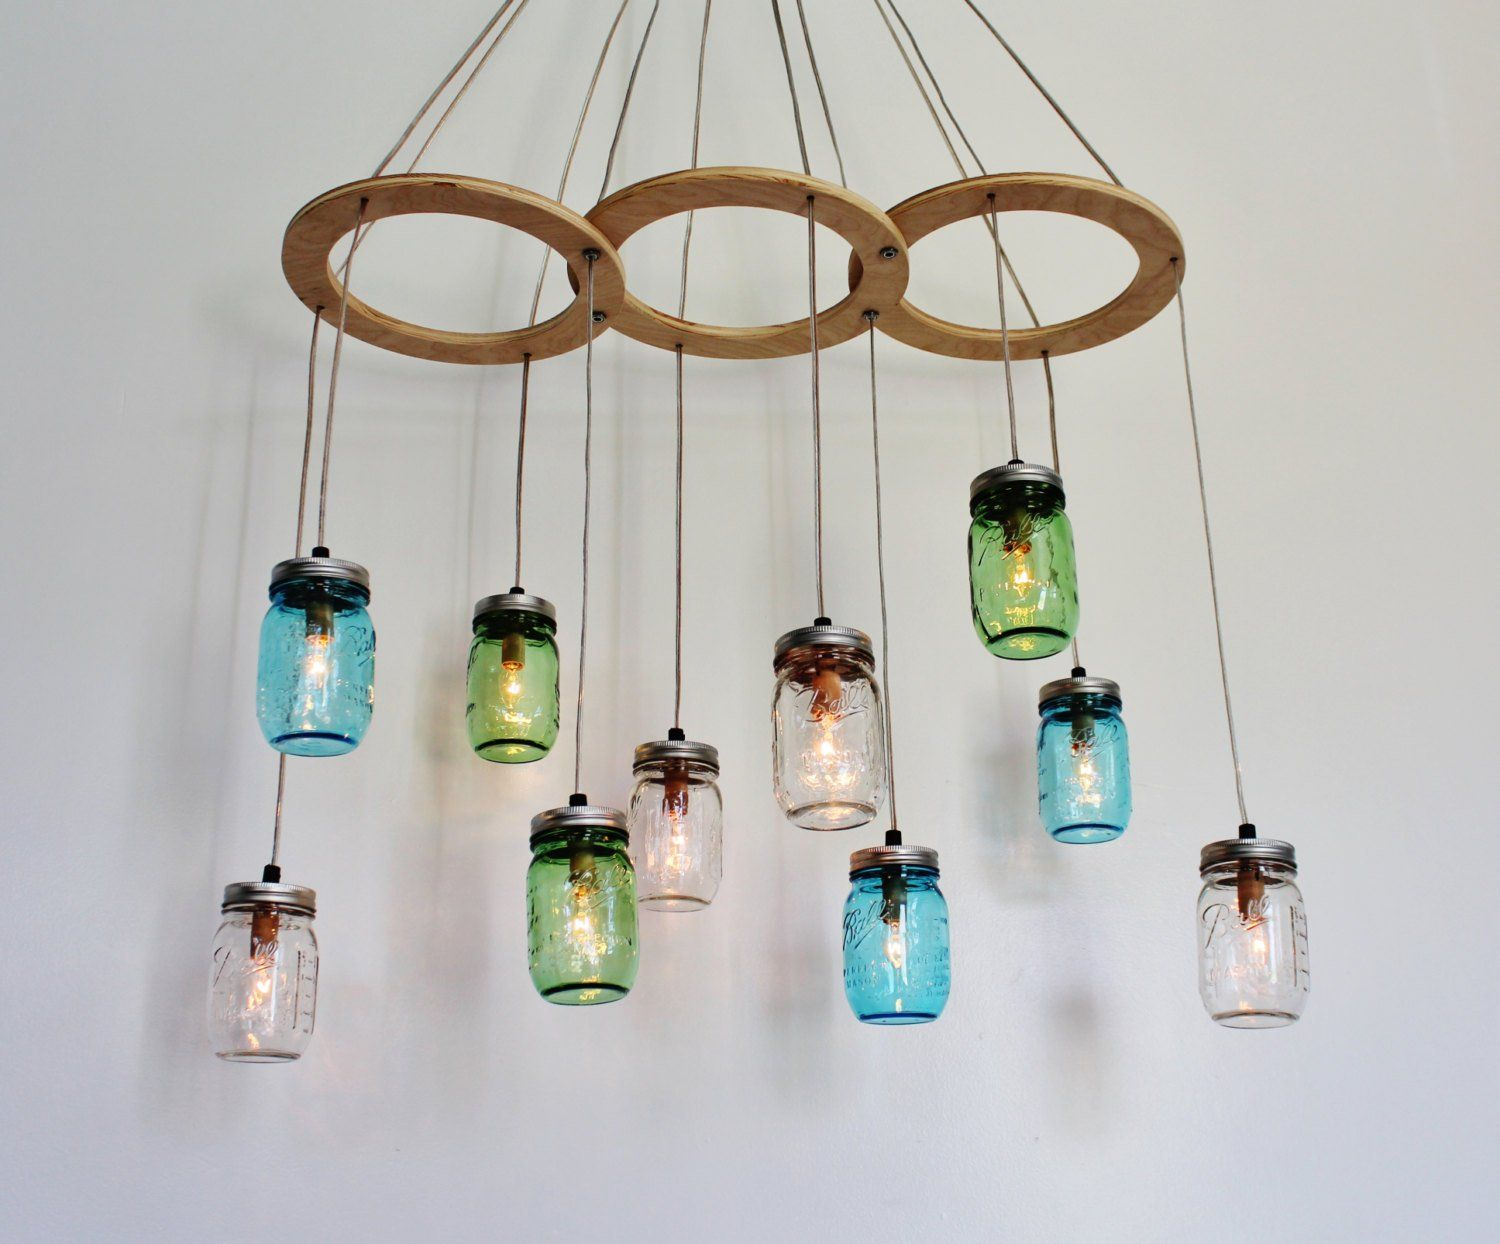 Furniture creative diy upcycled hanging glass chandelier lighting creative diy upcycled hanging glass chandelier lighting for rustic farmhouse dining table or kitchen spaces ideas farmhouse chandelier furniture arubaitofo Images